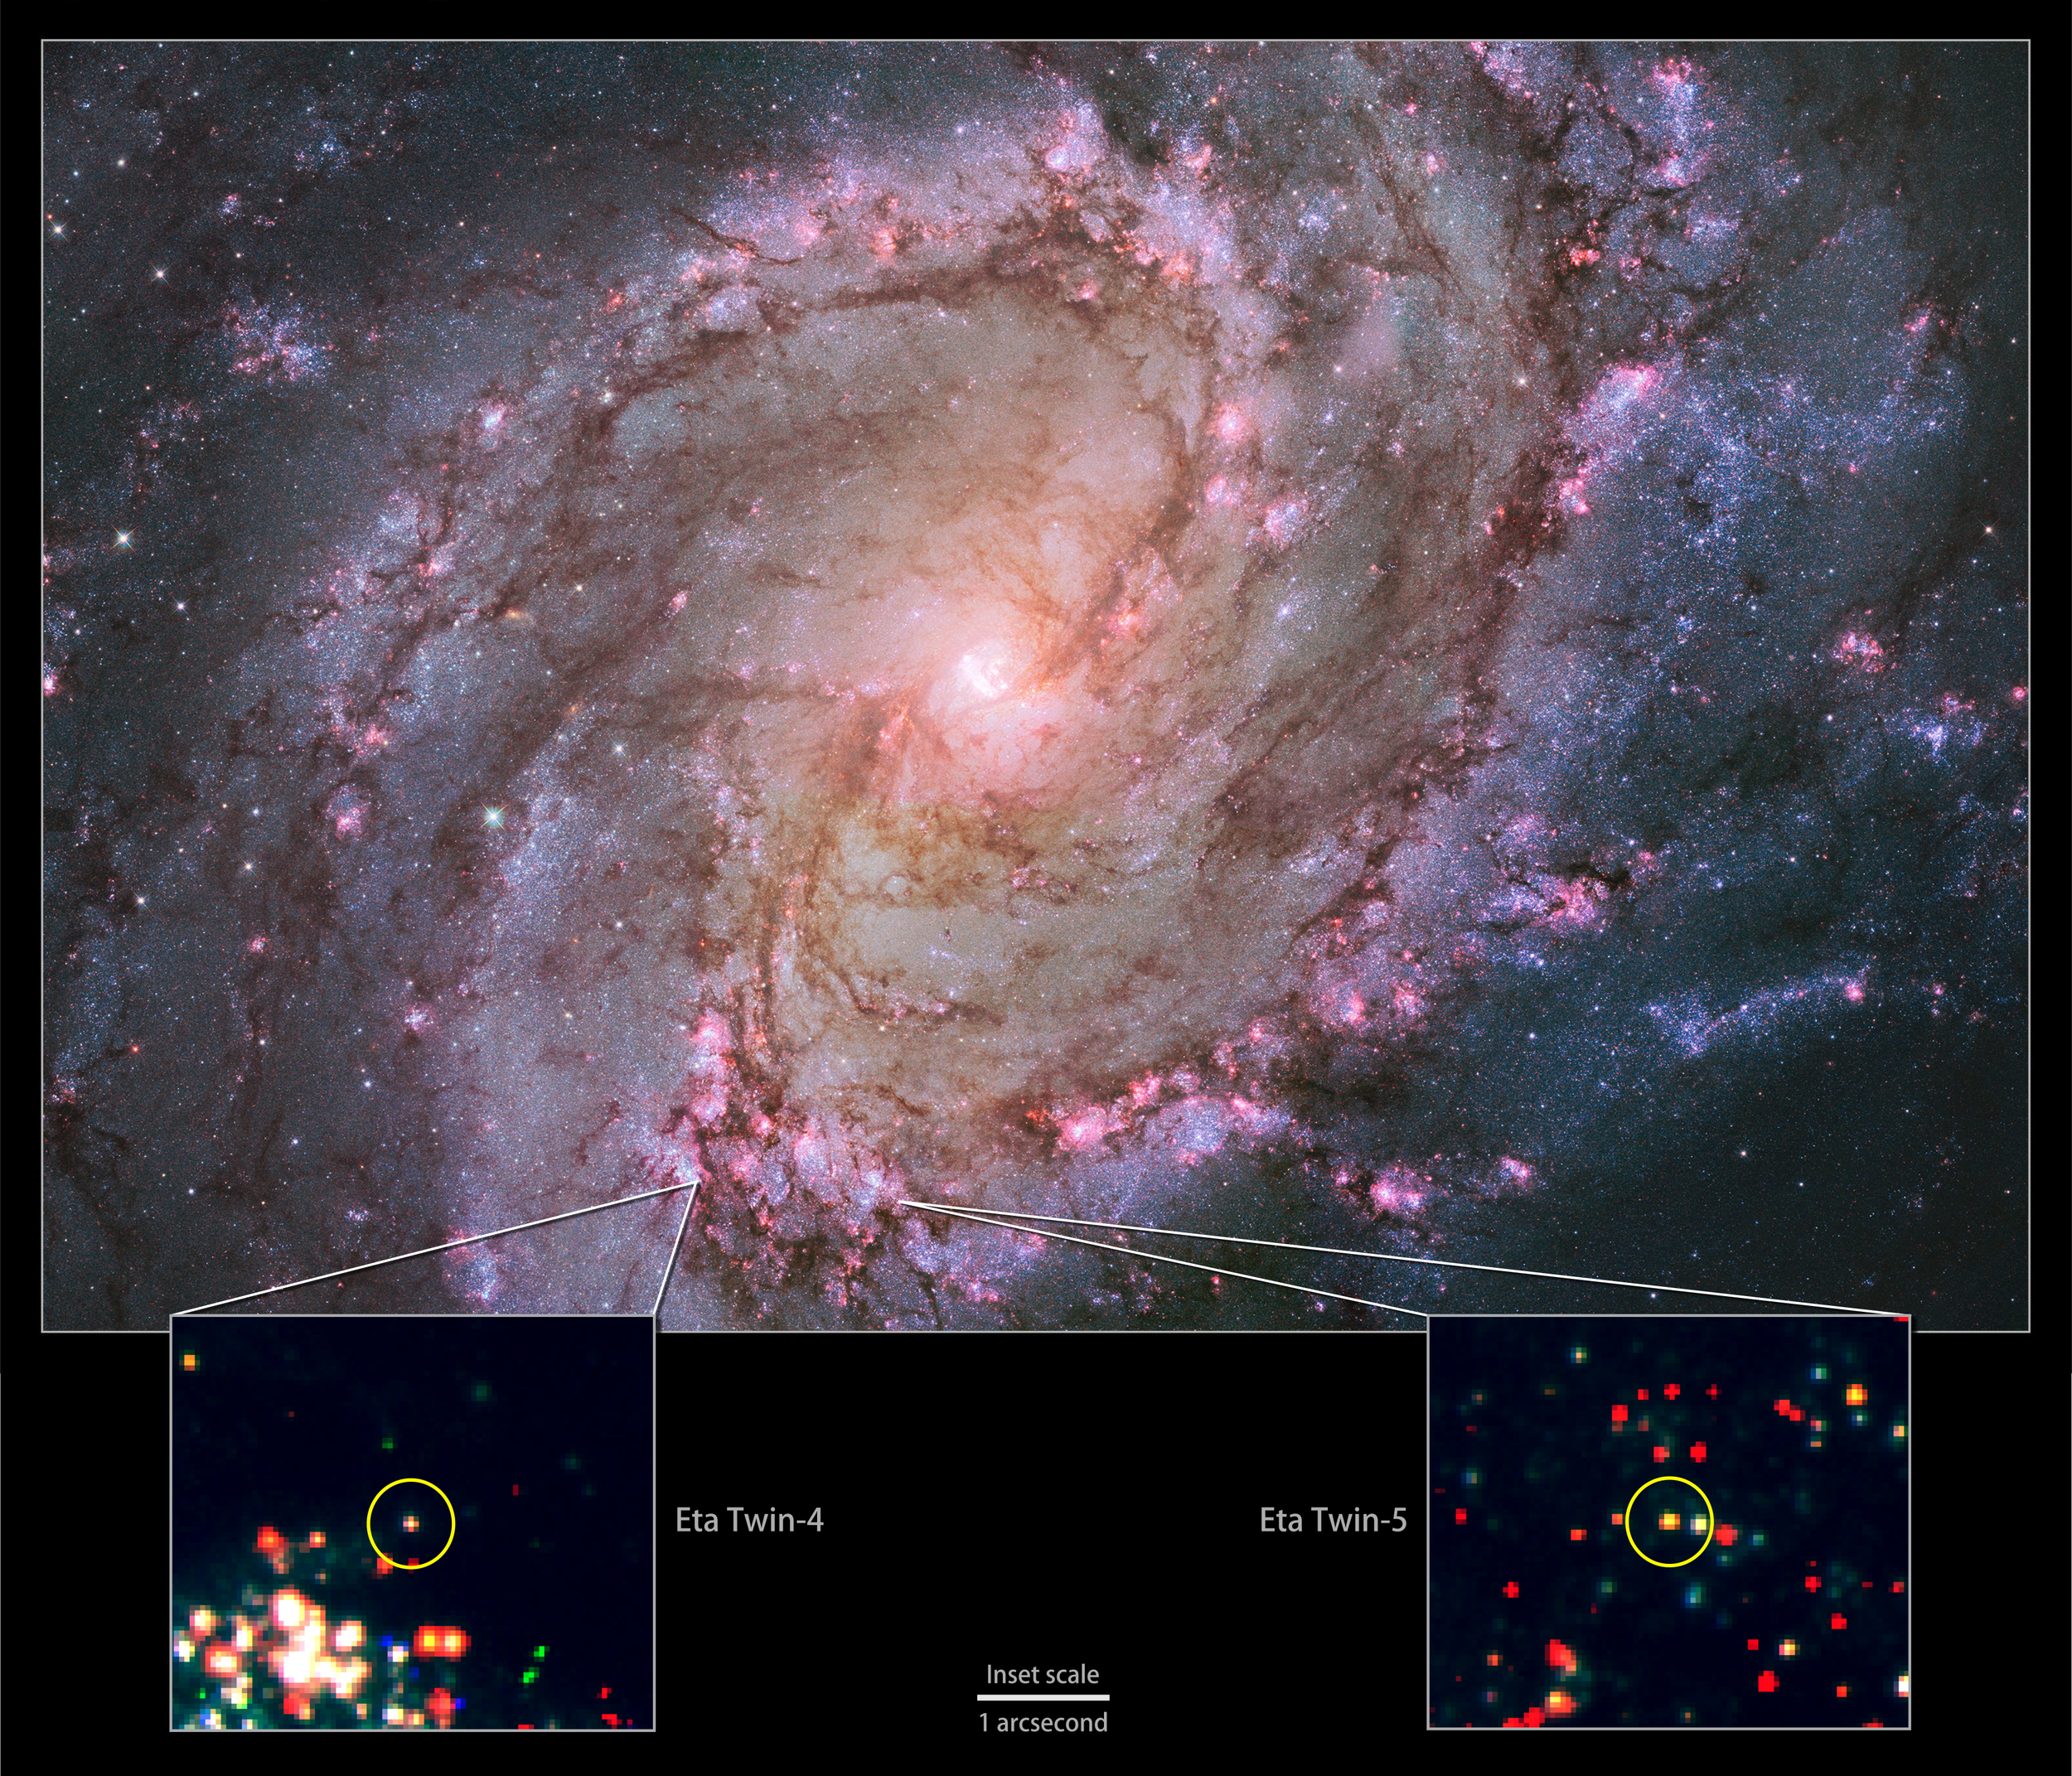 The nearby spiral galaxy M83 is currently the only one known to host two potential Eta Carinae twins. This composite of images from the Hubble Space Telescope's Wide Field Camera 3 instrument shows a galaxy ablaze with newly formed stars. A high rate of star formation increases the chances of finding massive stars that have recently undergone an Eta Carinae-like outburst. Bottom: Insets zoom into Hubble data to show the locations of M83's Eta twins. - Image Credits: NASA, ESA, the Hubble Heritage Team (STScI/AURA) and R. Khan (GSFC and ORAU)